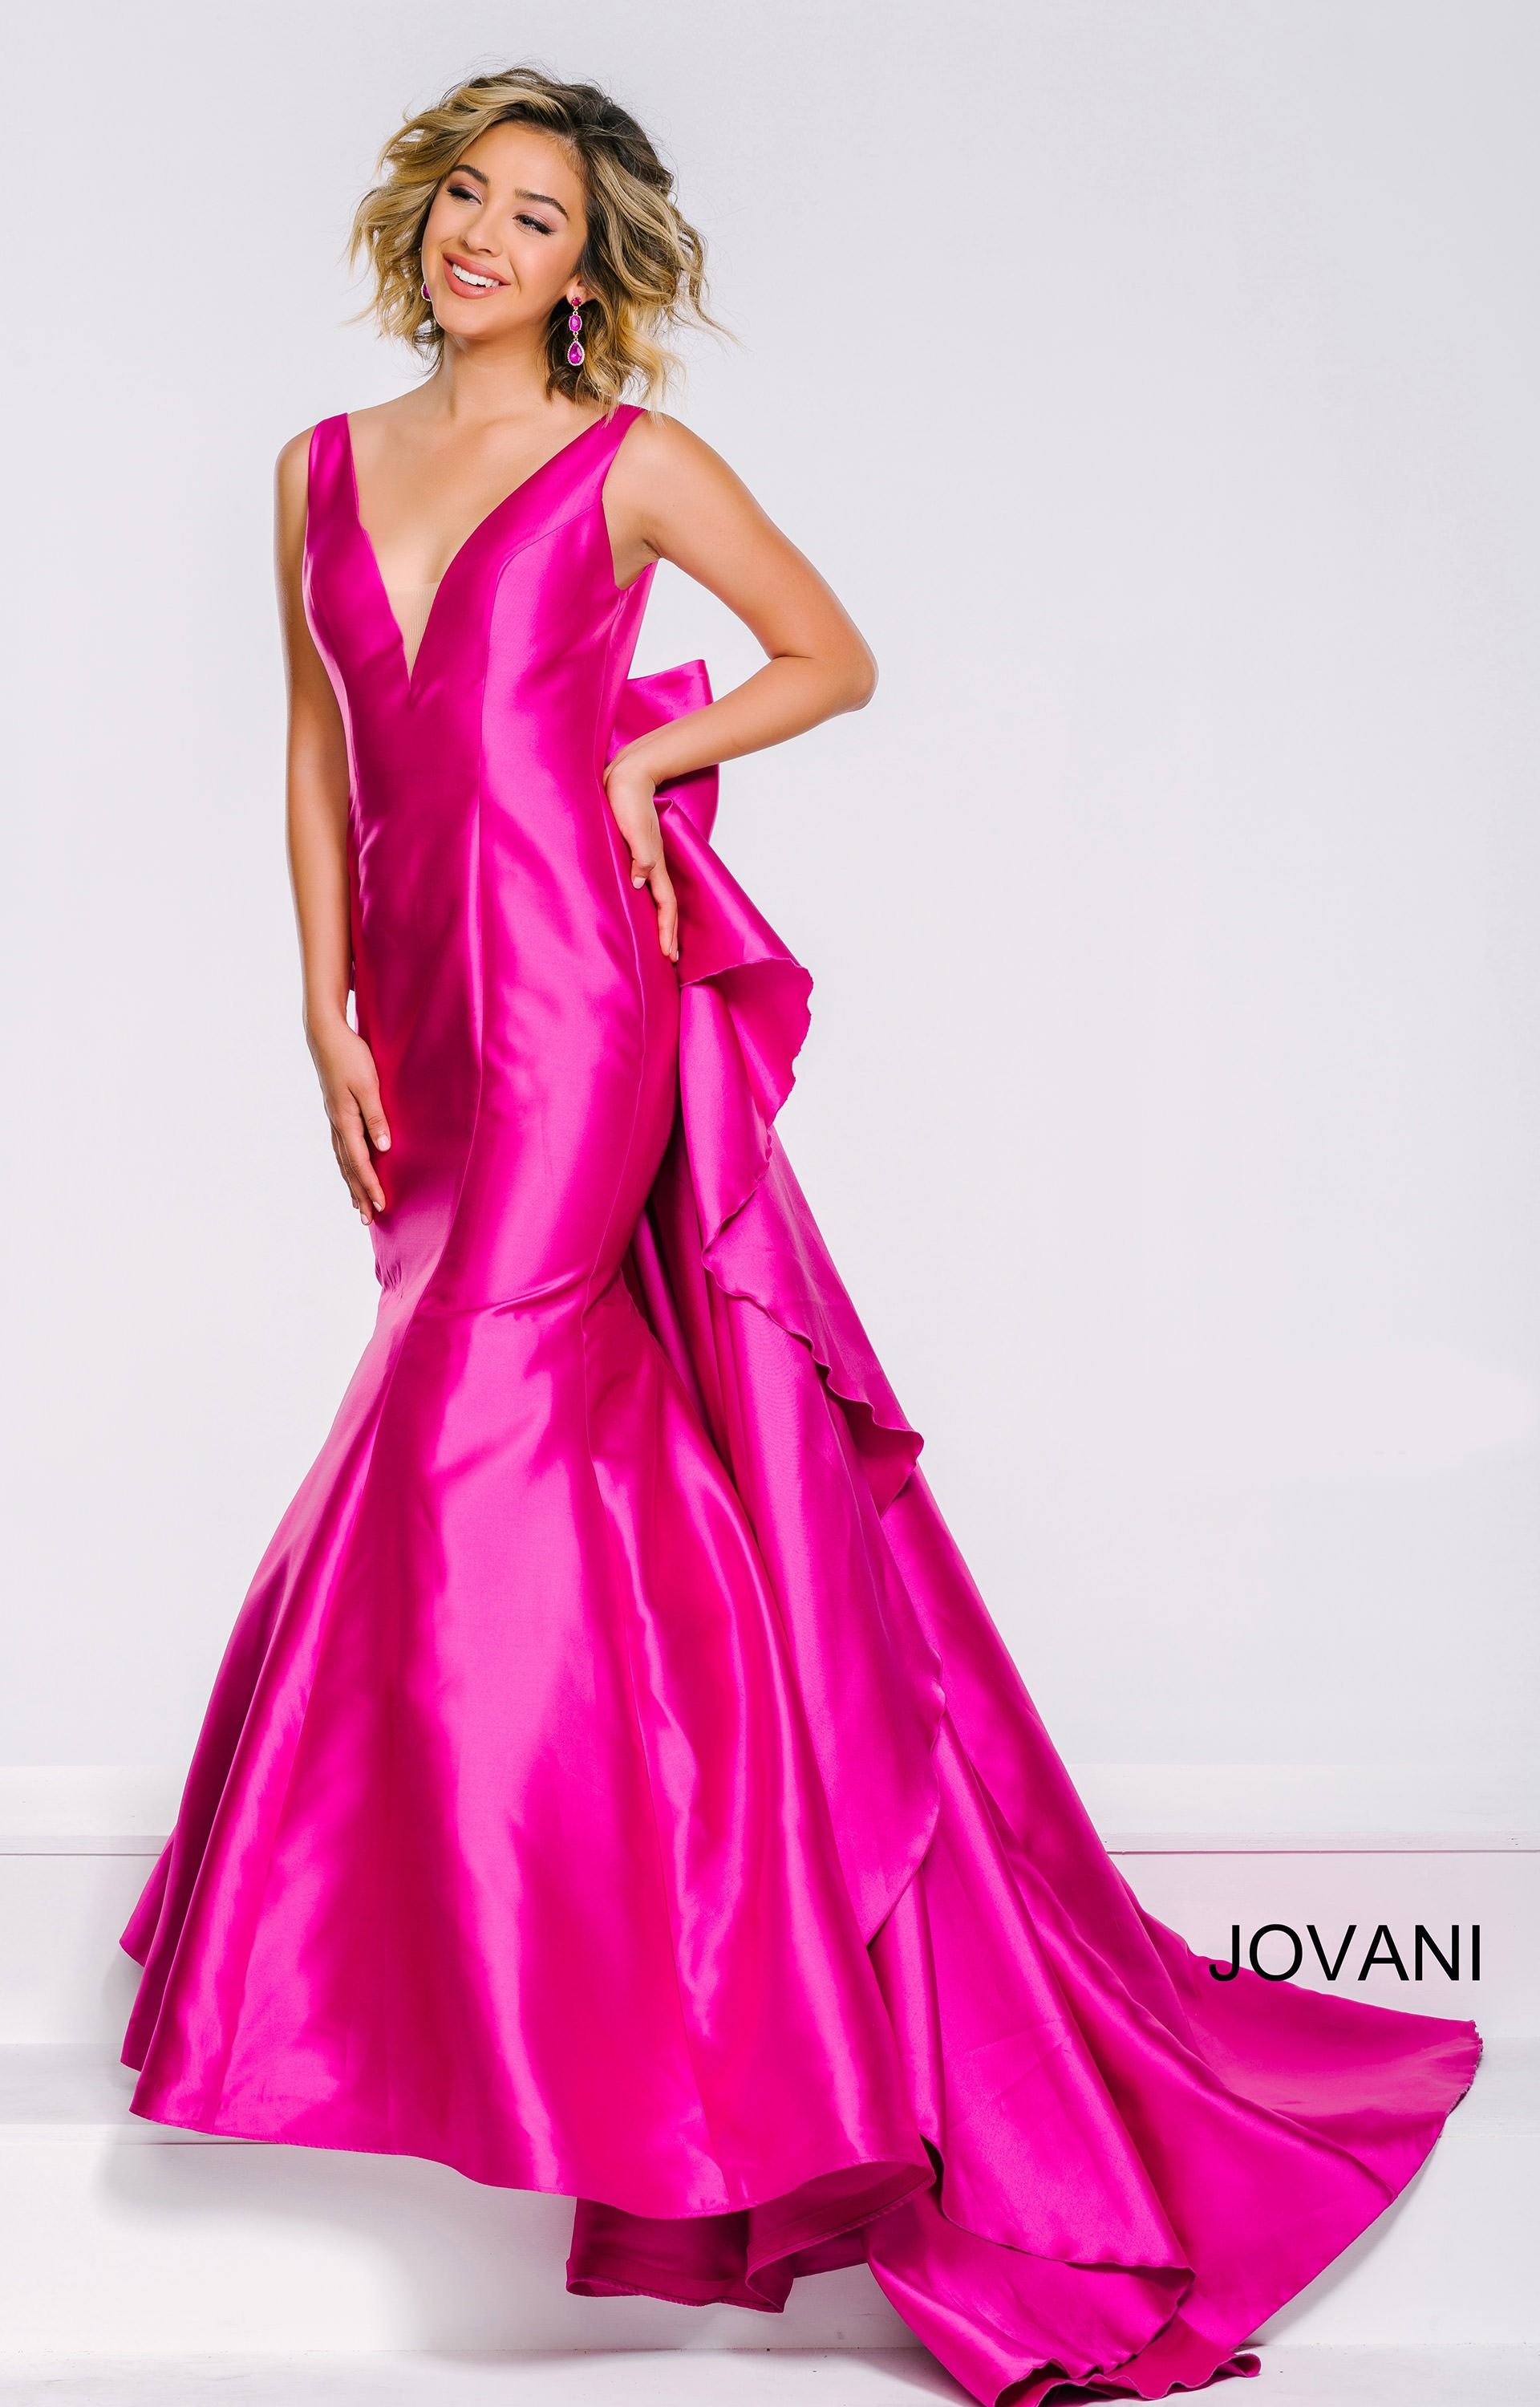 Jovani Prom Dresses Satin Bow – Fashion dresses